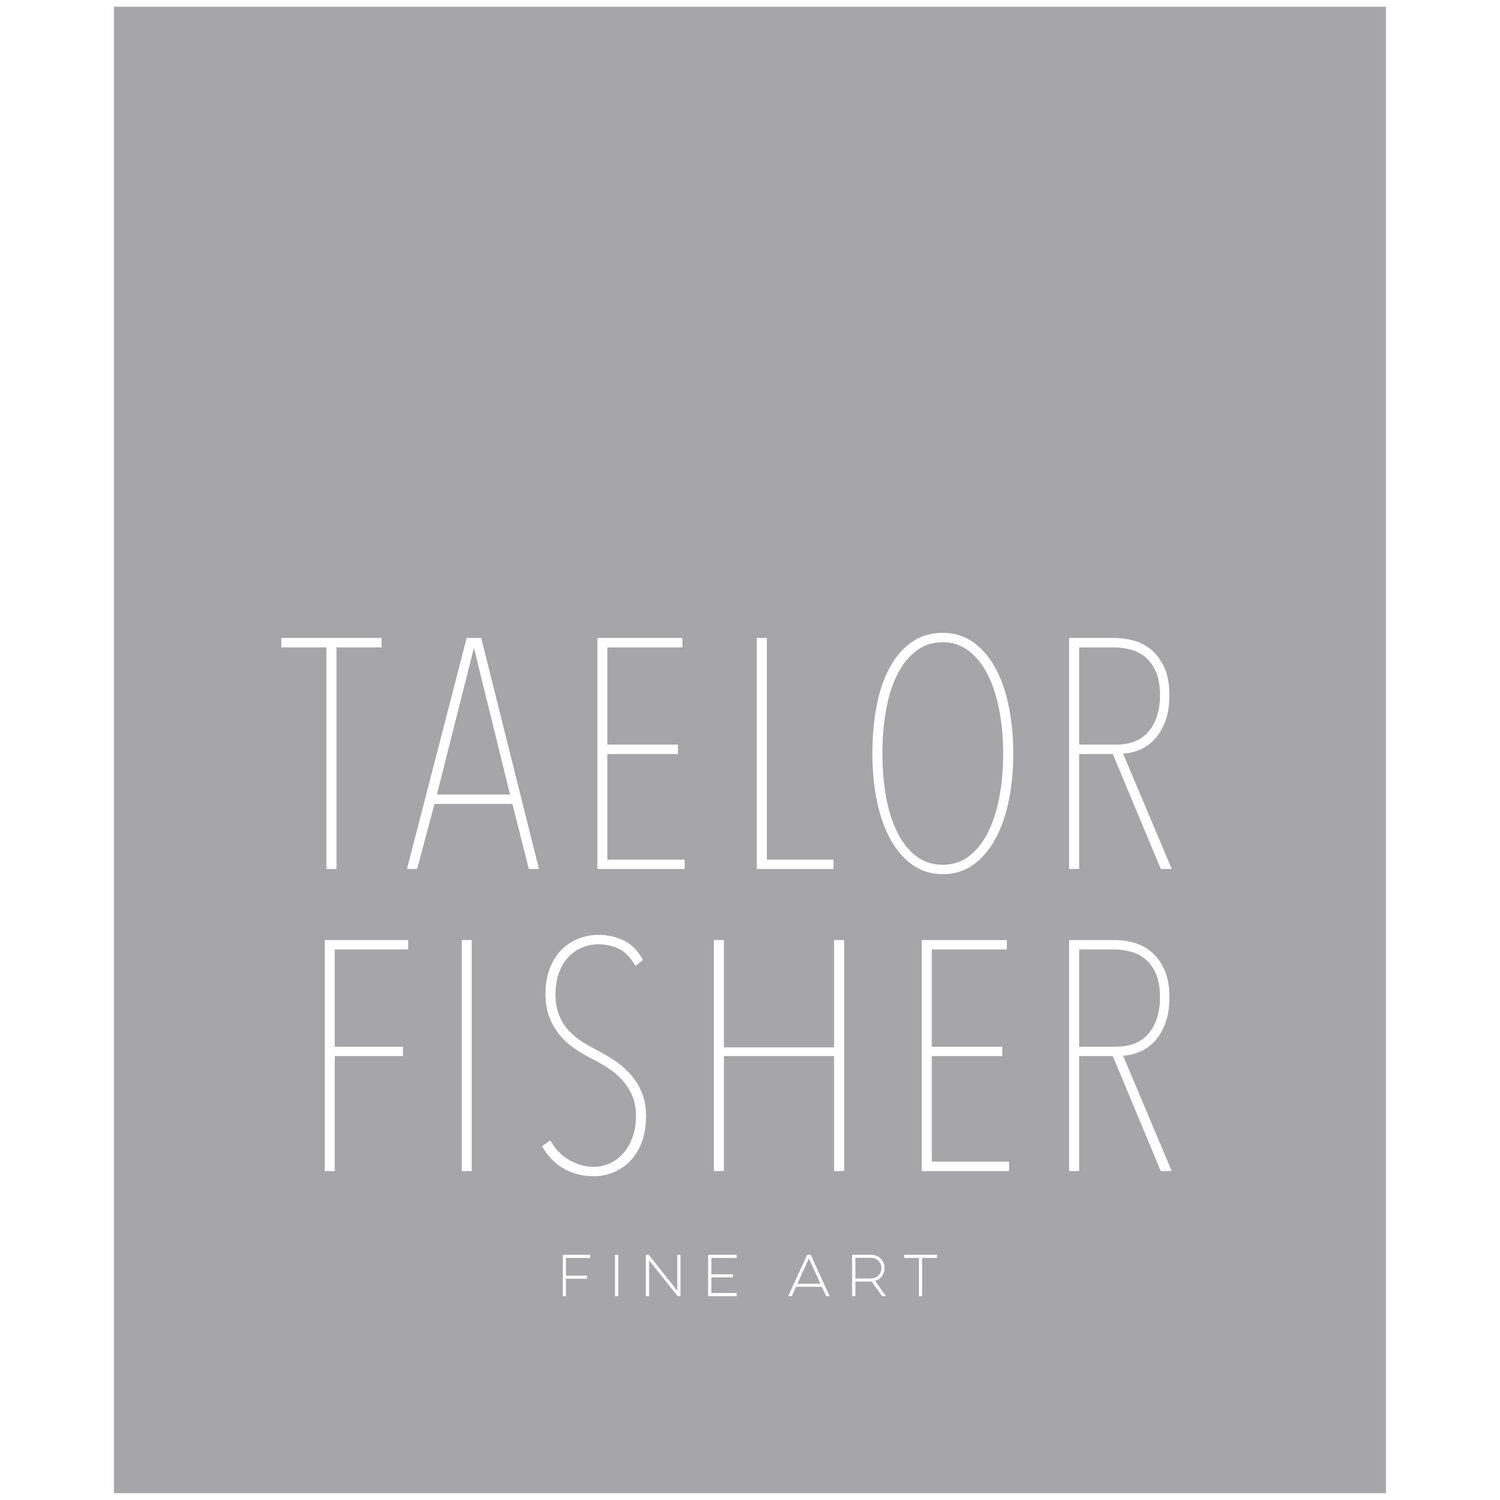 Taelor Fisher Fine Art